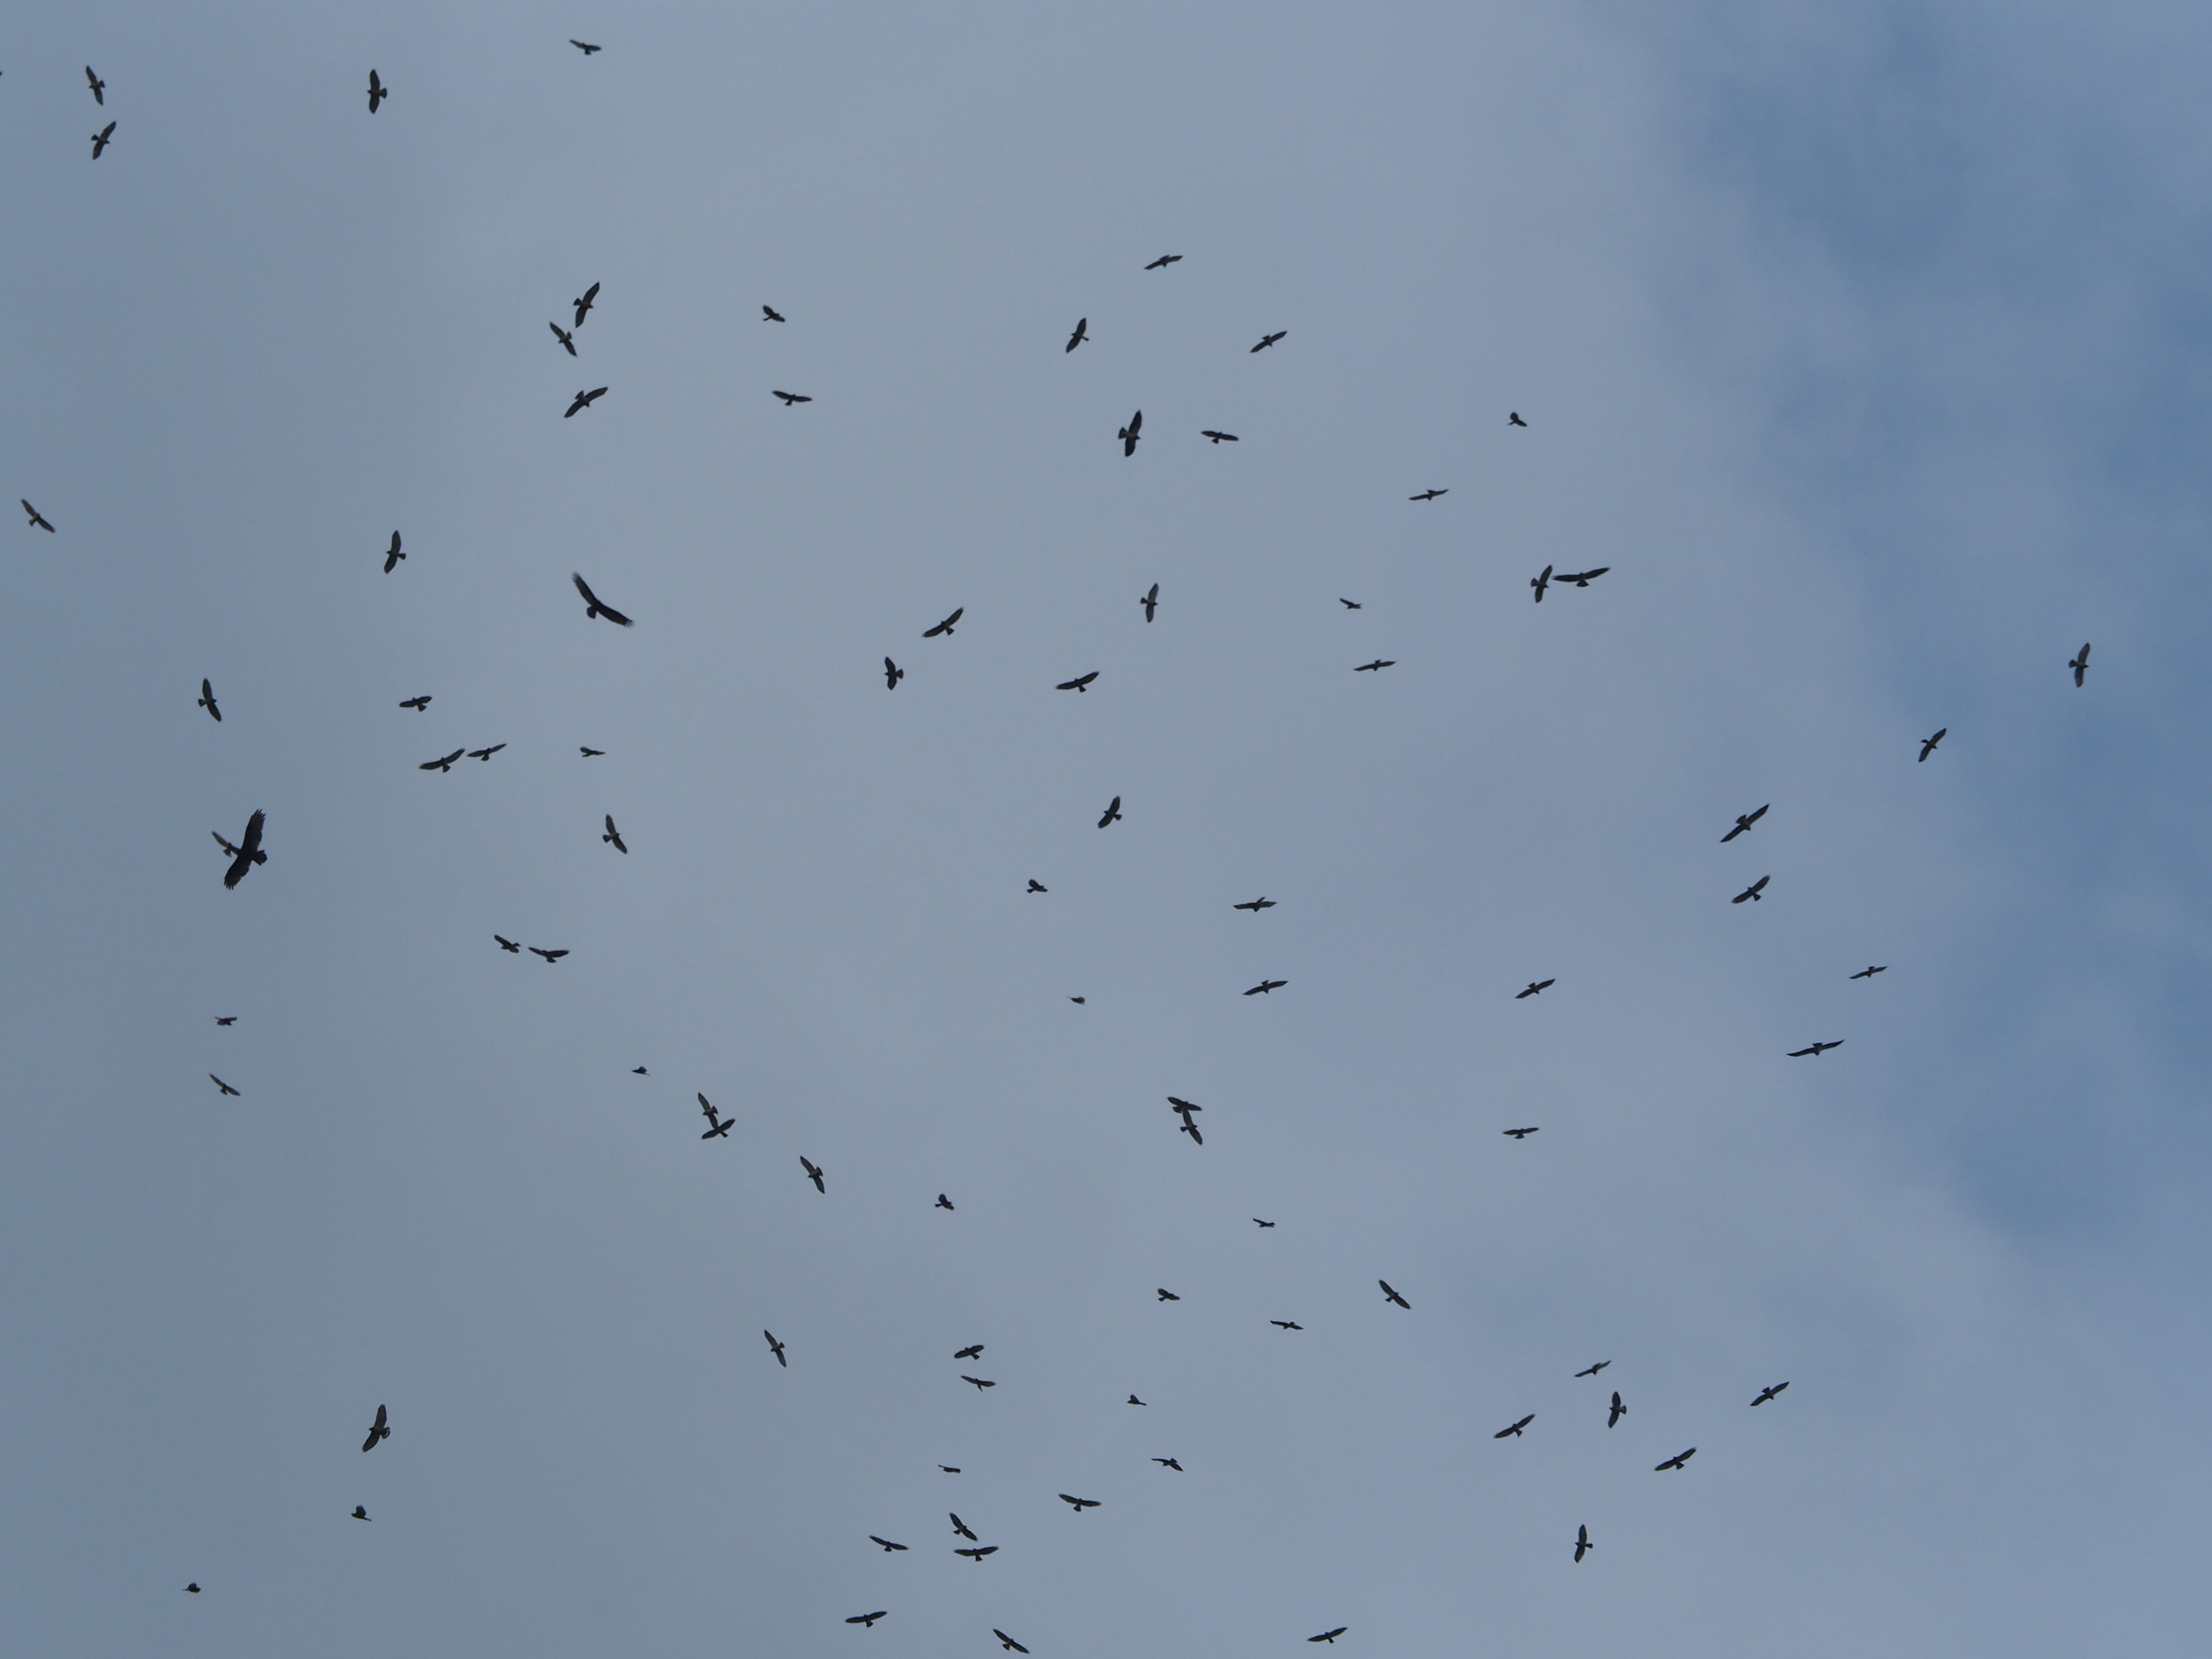 Kettling broadwings and other raptors, photo by Diane Allison.